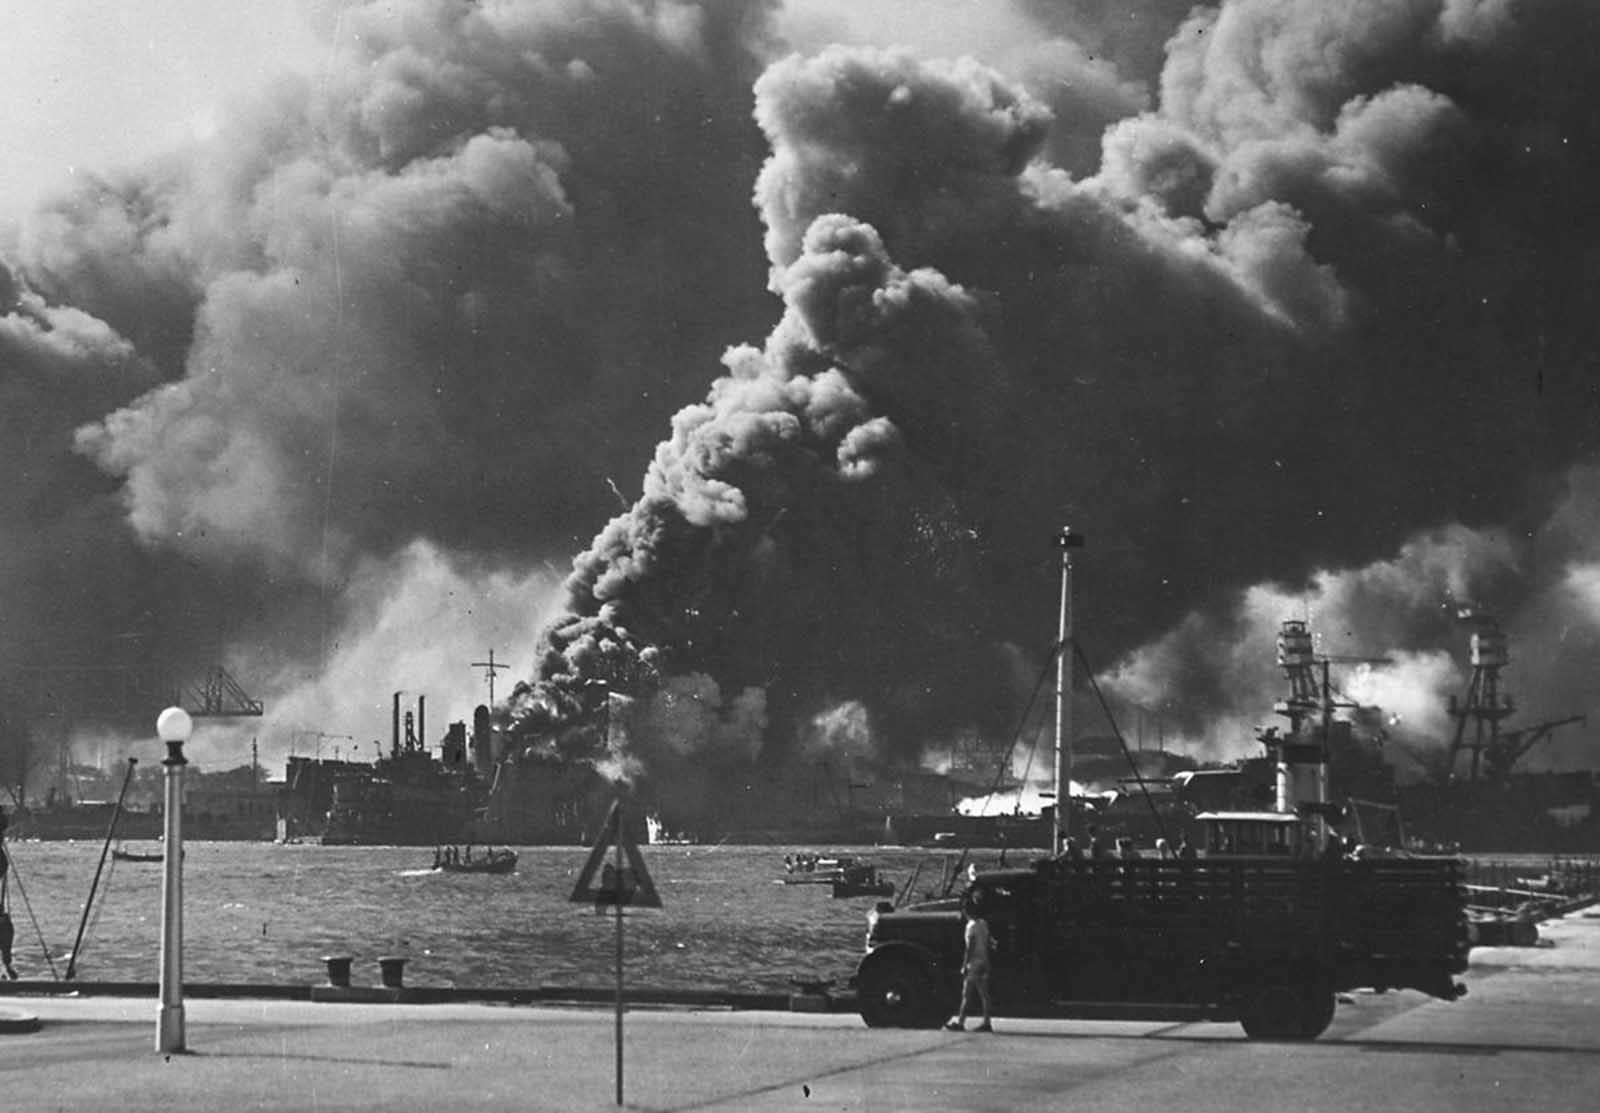 The USS Shaw burns in Pearl Harbor. Japanese bombers hit the forward portion of the ship with three bombs. The resulting fires proved uncontrollable, and Shaw was ordered abandoned. Soon after, her forward ammunition magazines detonated in a spectacular blast, completely removing her bow.